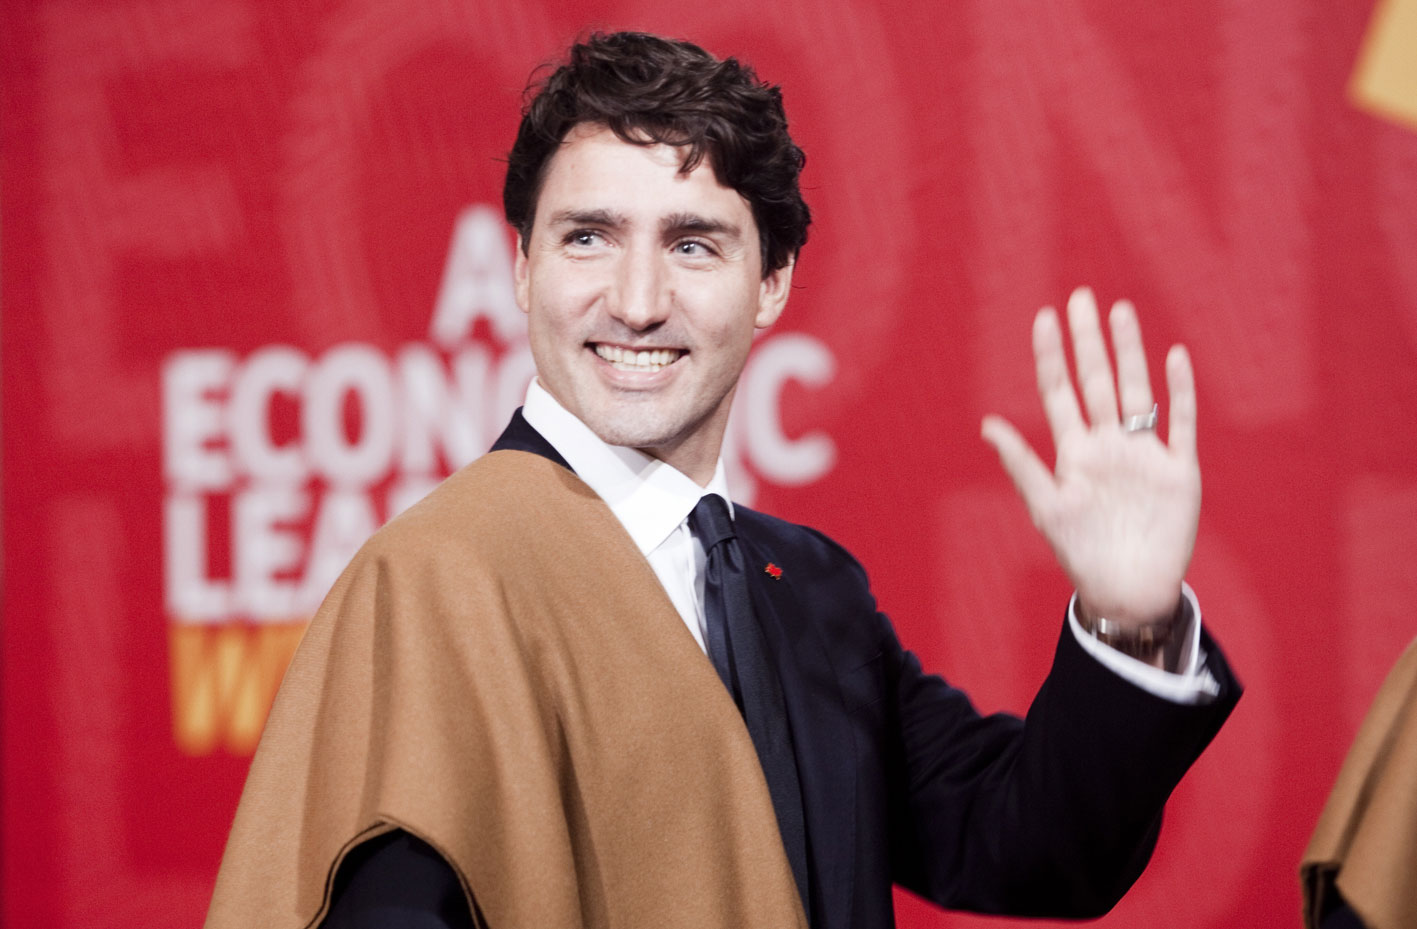 Justin Trudeau, Prime Minister of Canada. Official photograph of the APEC Presidents Summit 2016 in Lima.